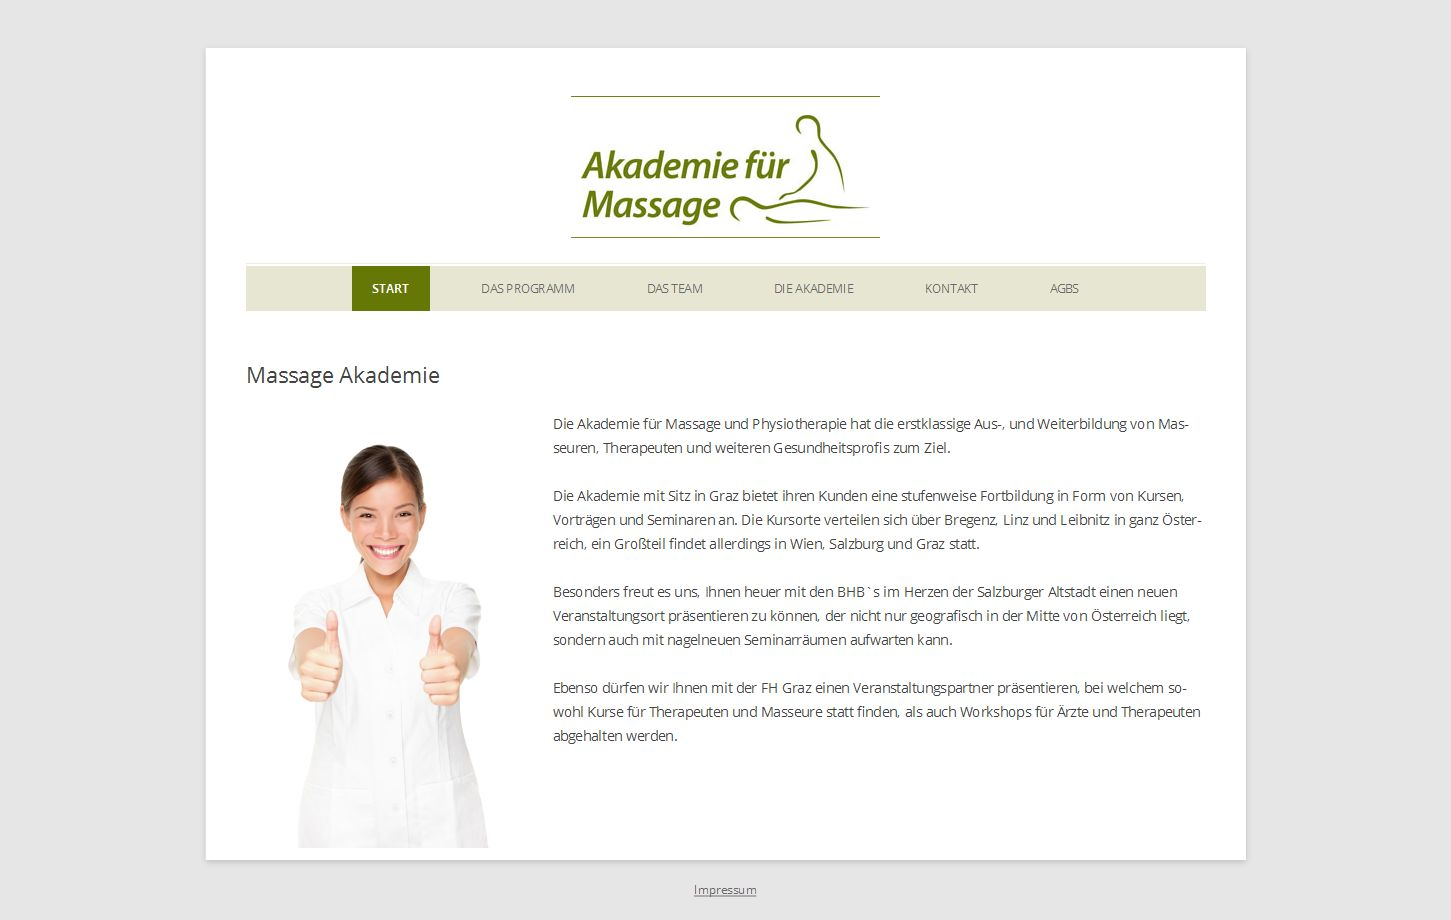 akademie-massage_at